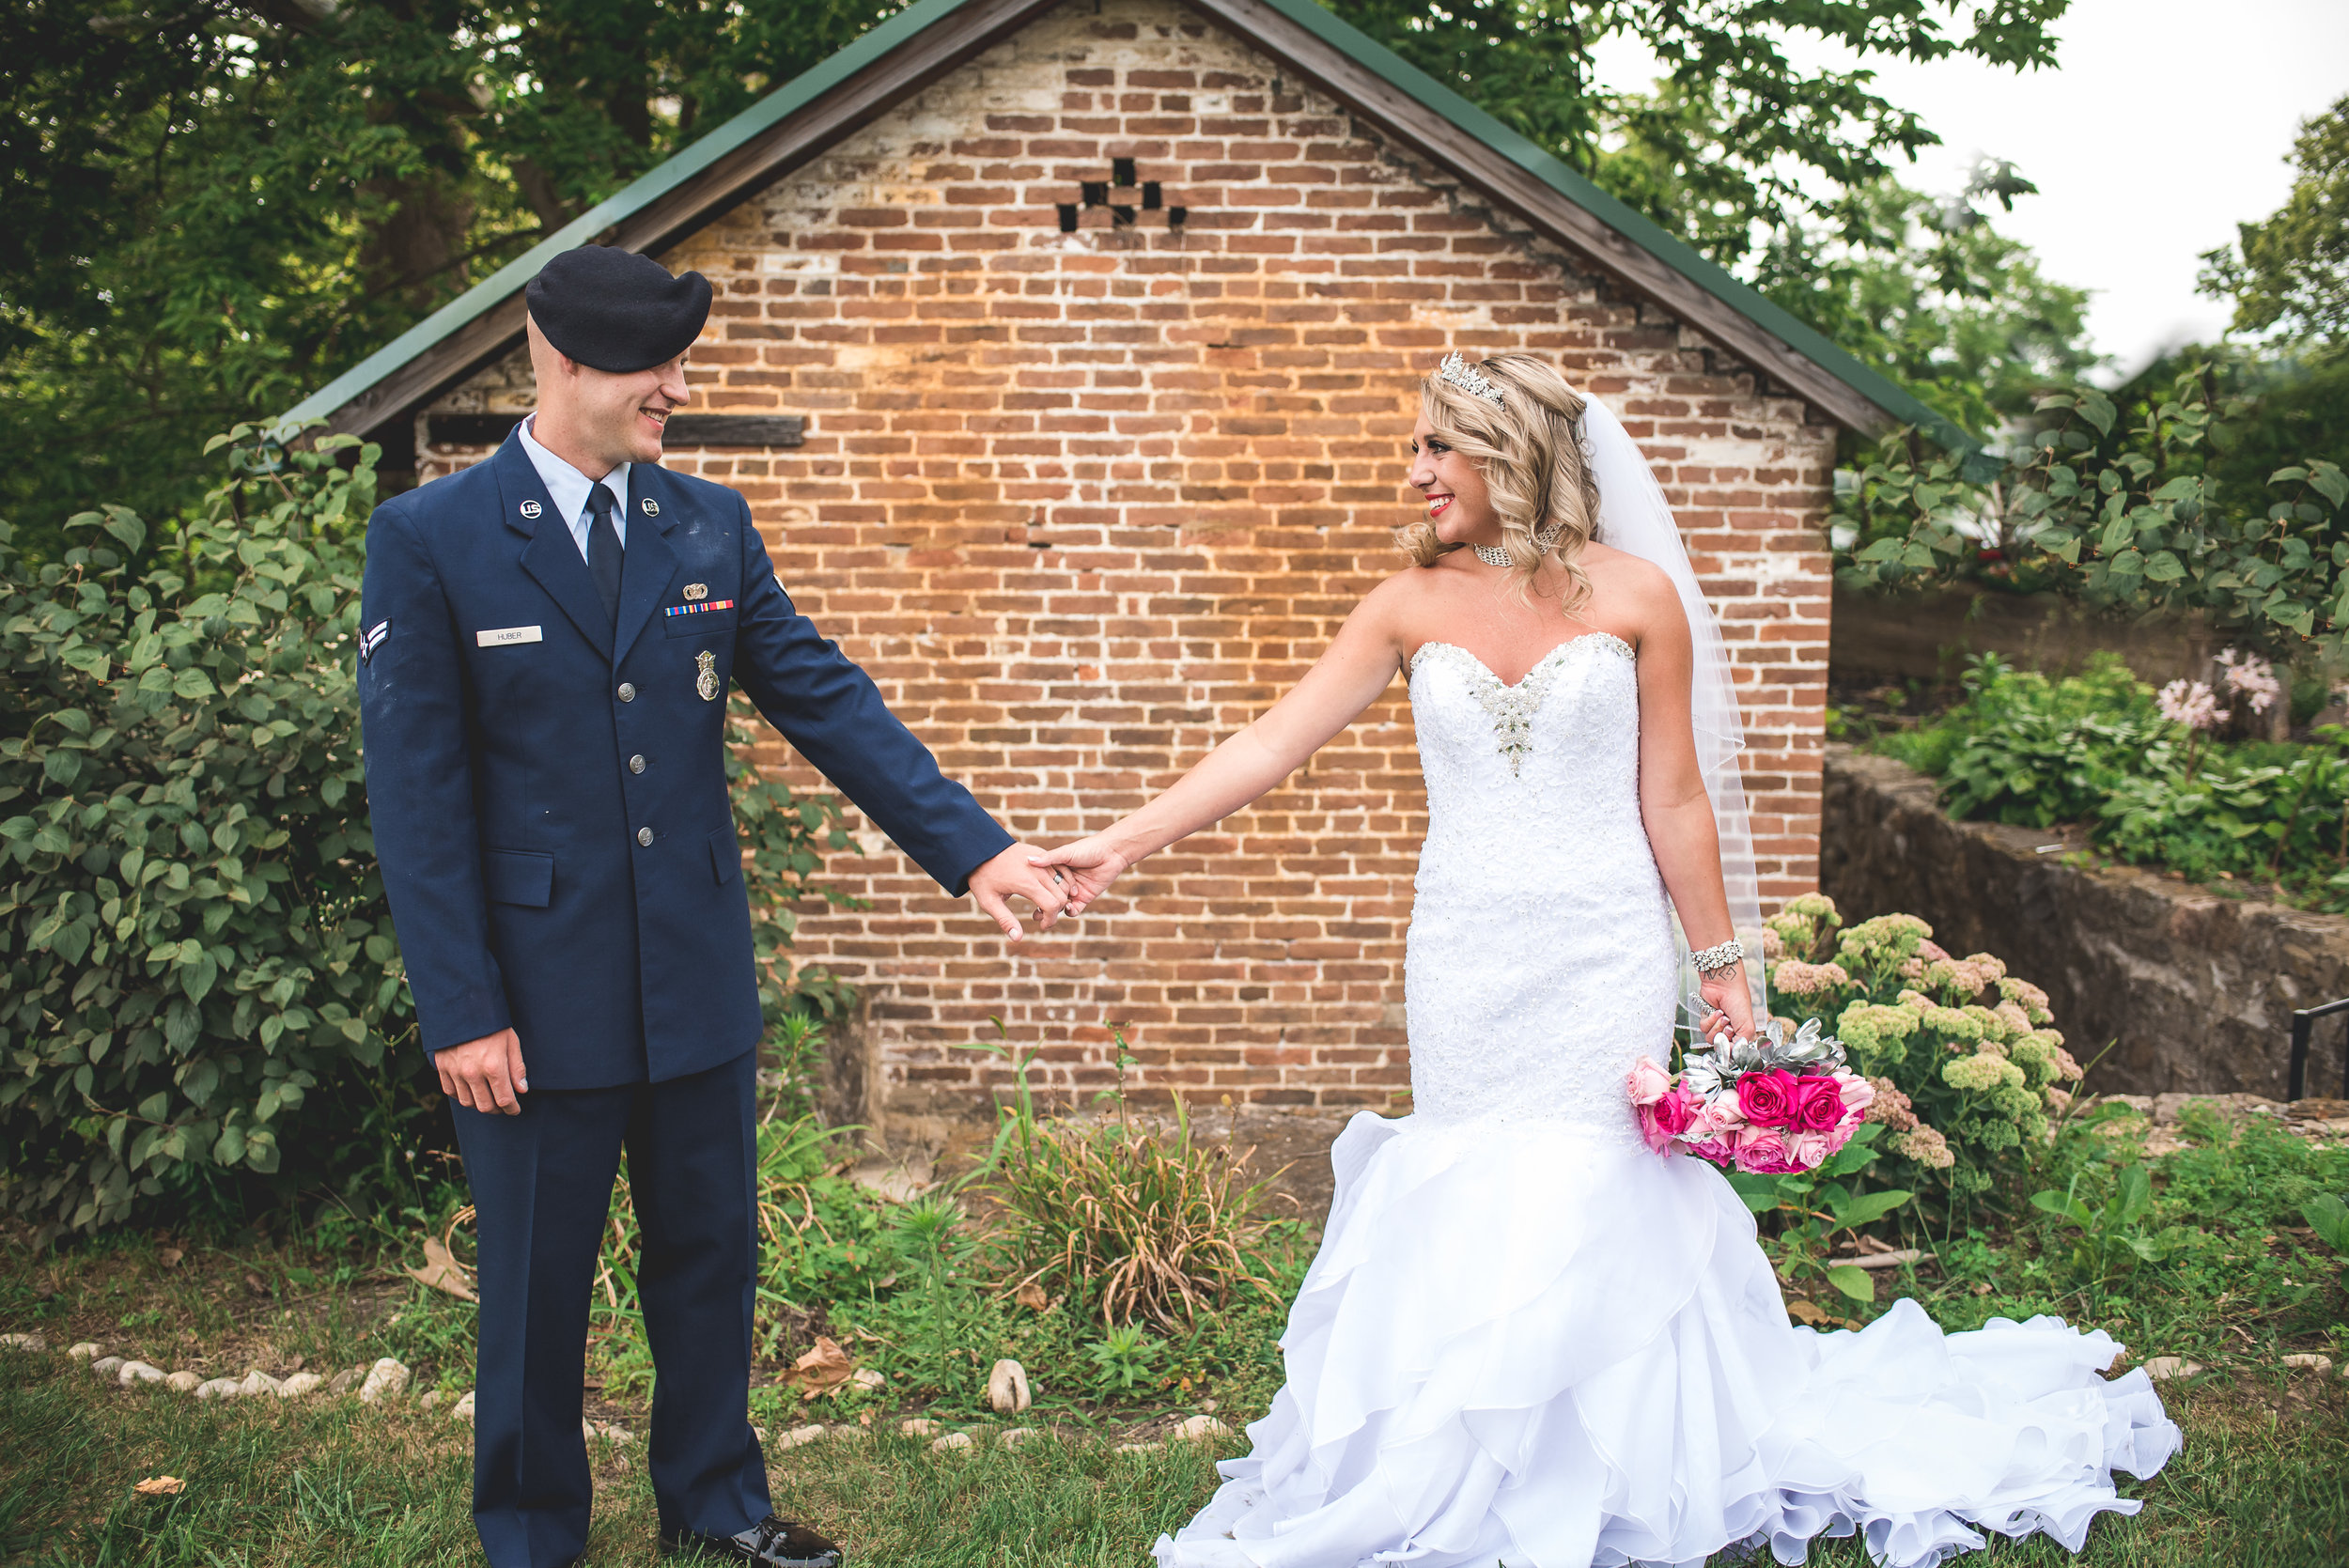 Columbus Ohio Wedding Photographer | Military wedding